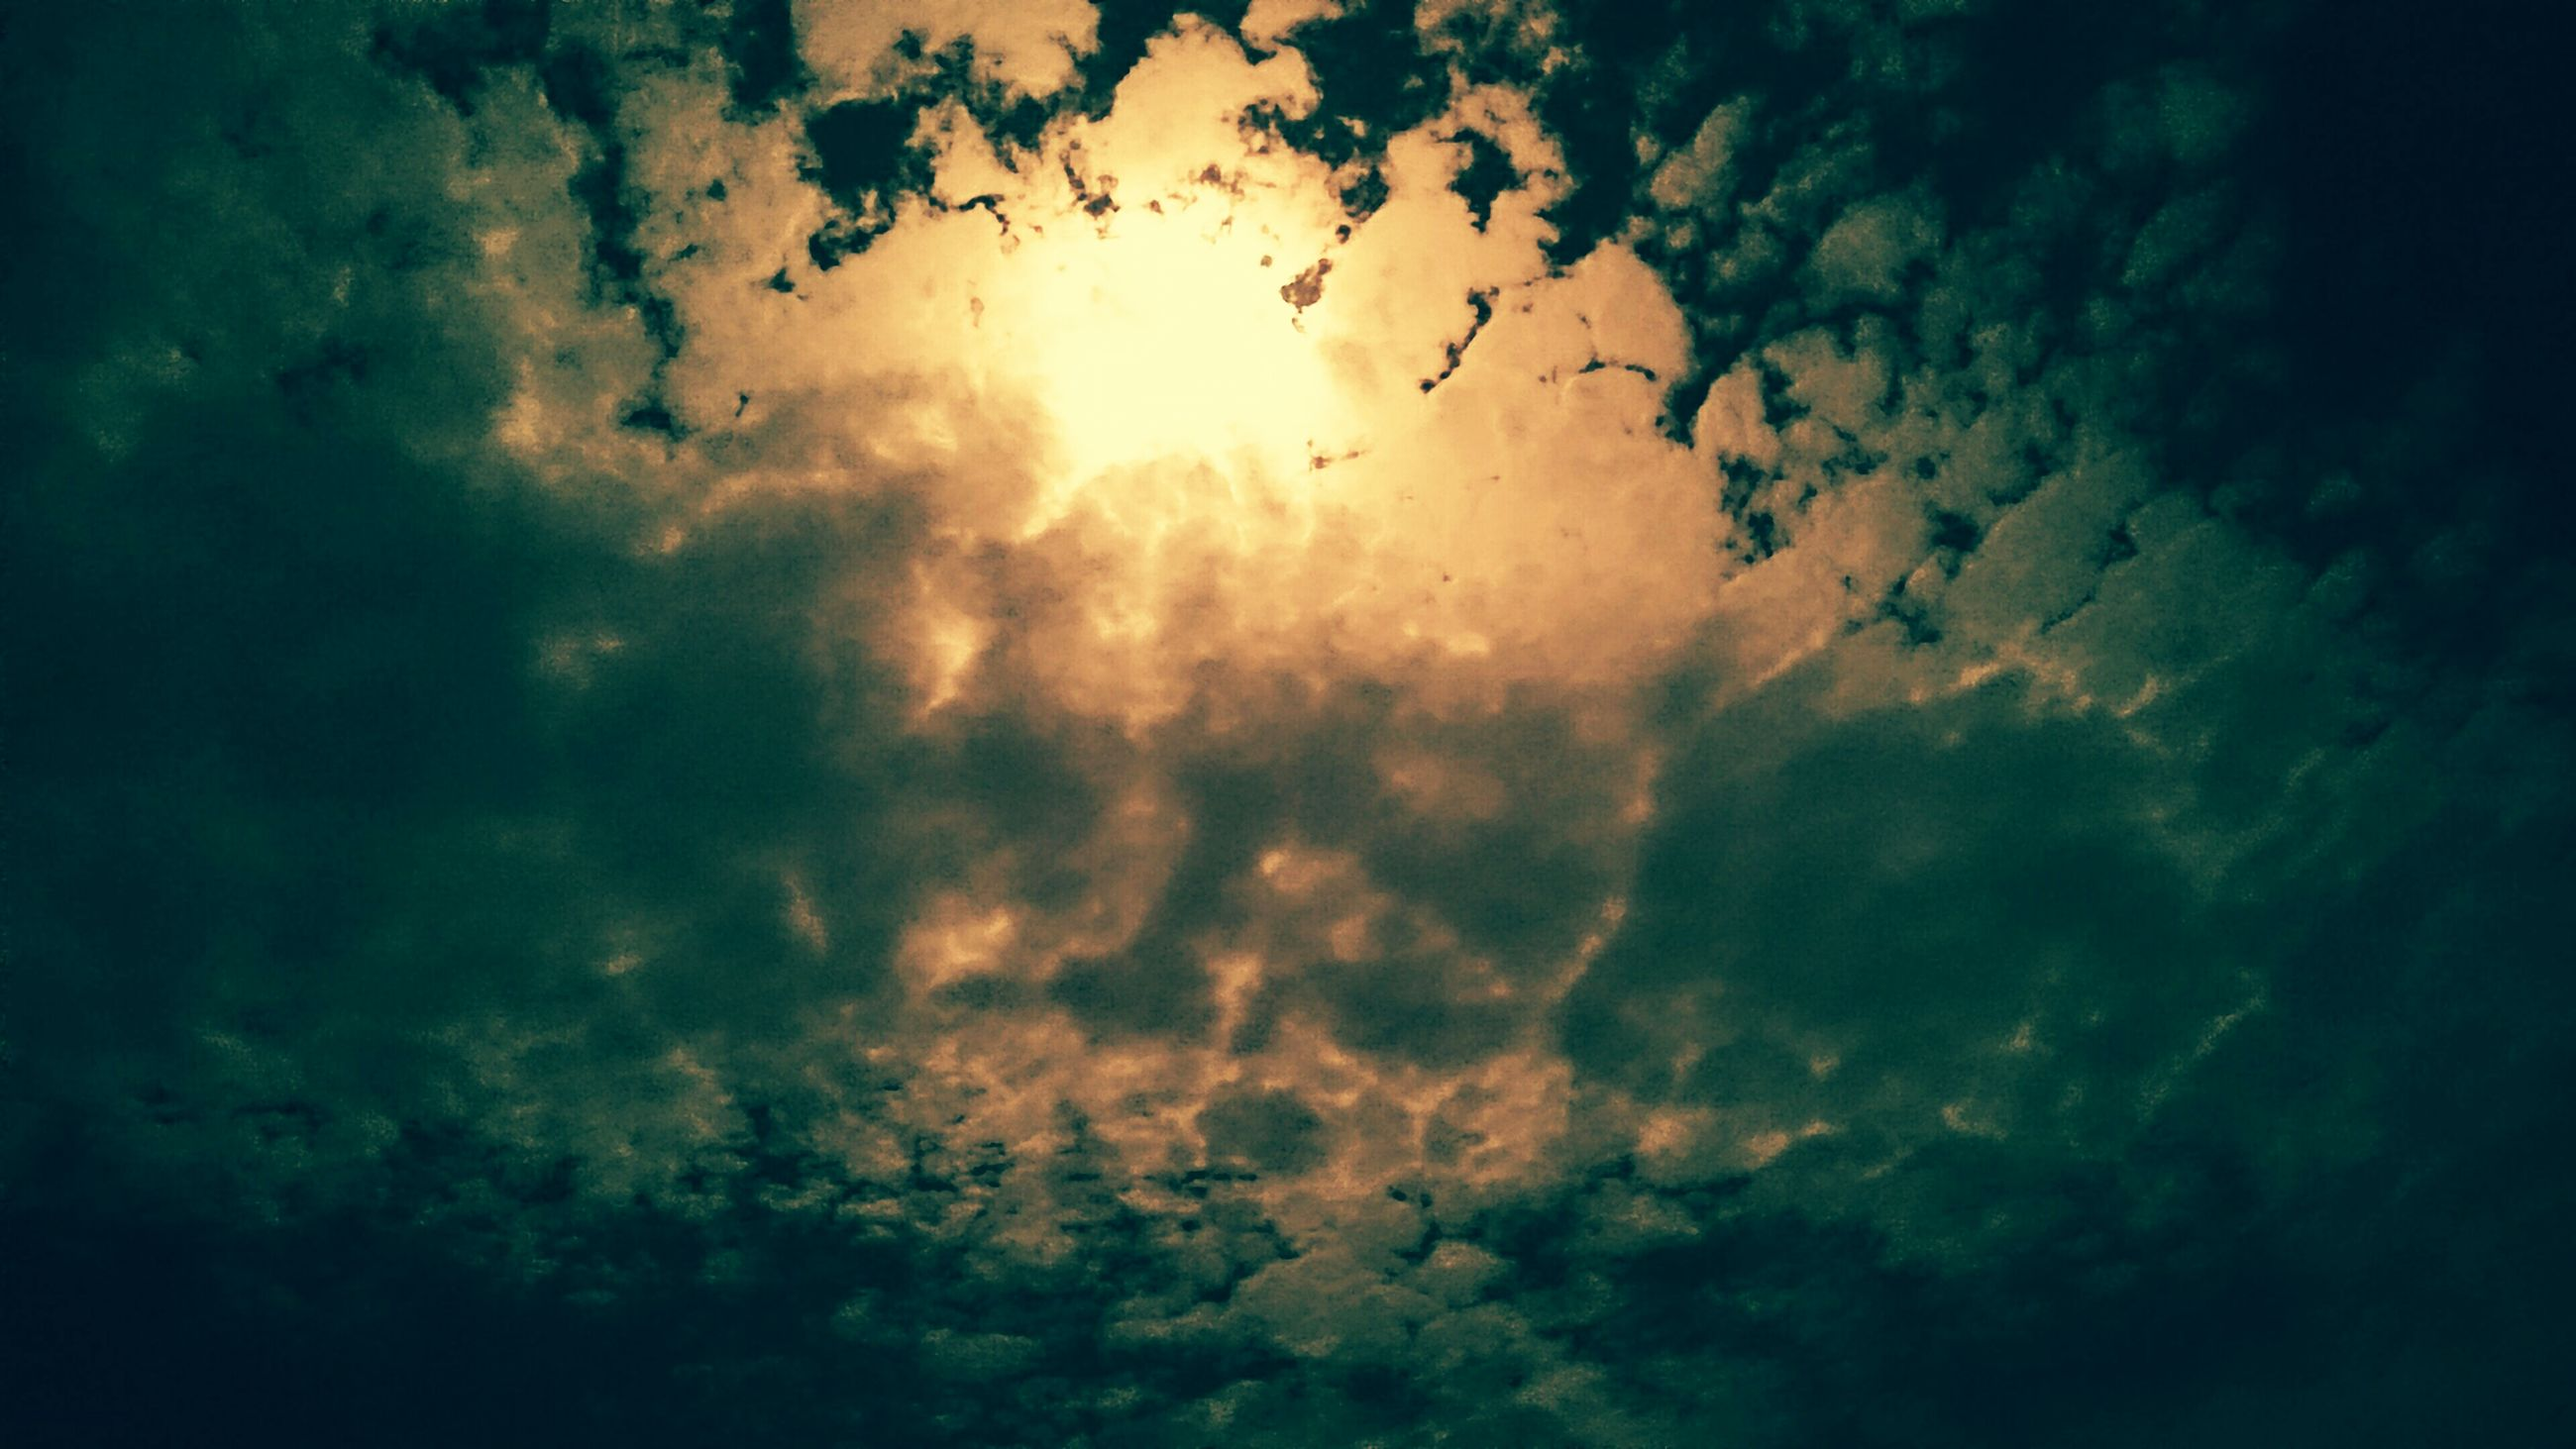 sky, cloud - sky, sun, low angle view, sunset, beauty in nature, tranquility, scenics, cloudy, nature, tranquil scene, sunbeam, sunlight, cloud, silhouette, idyllic, weather, outdoors, dramatic sky, no people